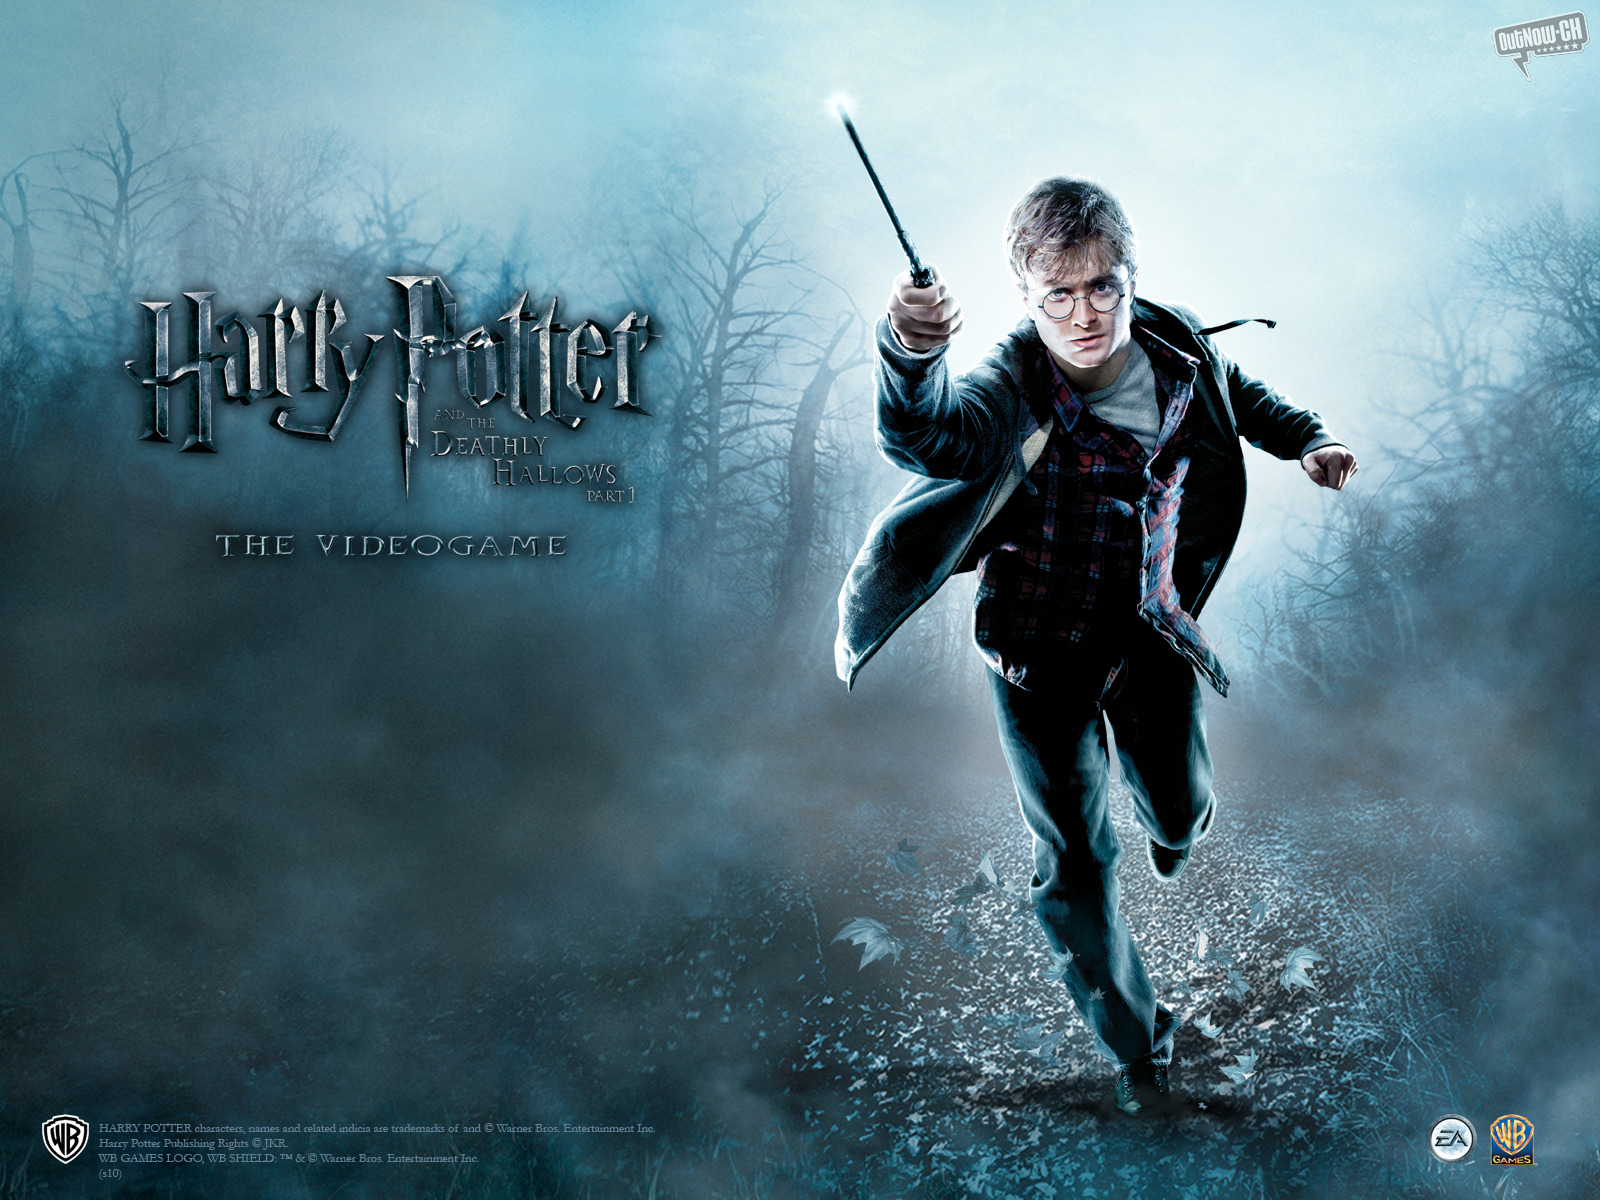 Cool Wallpaper Harry Potter Mac - harry-potter%3A-deathly-hallows_wallpapers_26321_1600x1200  Best Photo Reference_91981.jpg